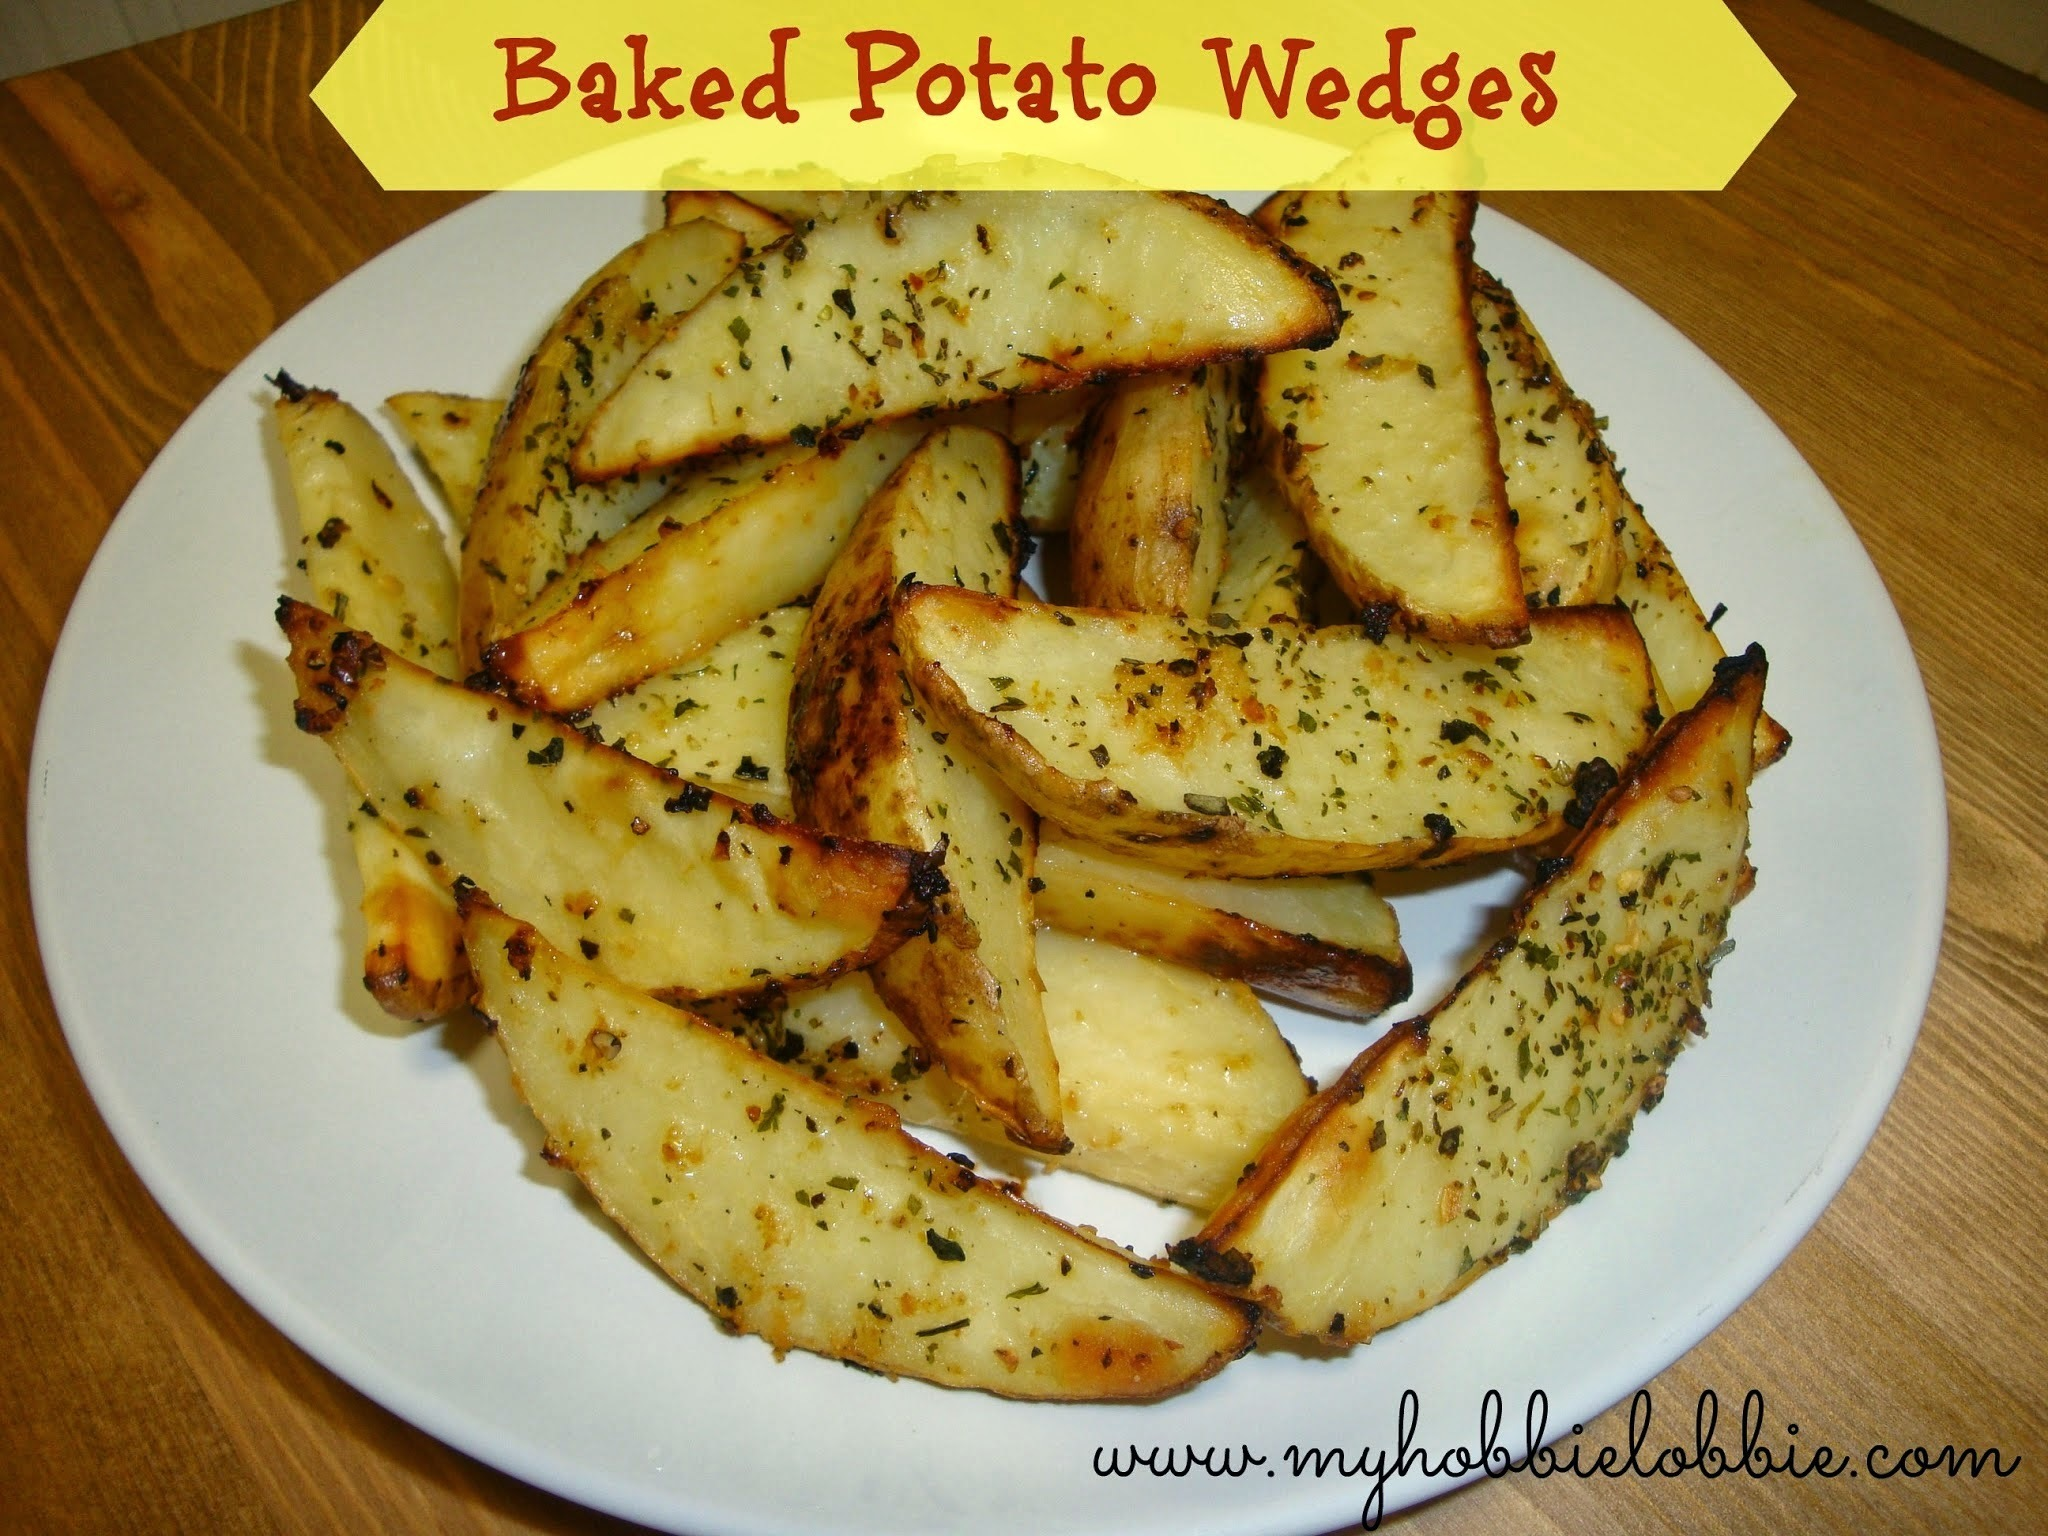 Baked (Garlic Herb) Potato Wedges